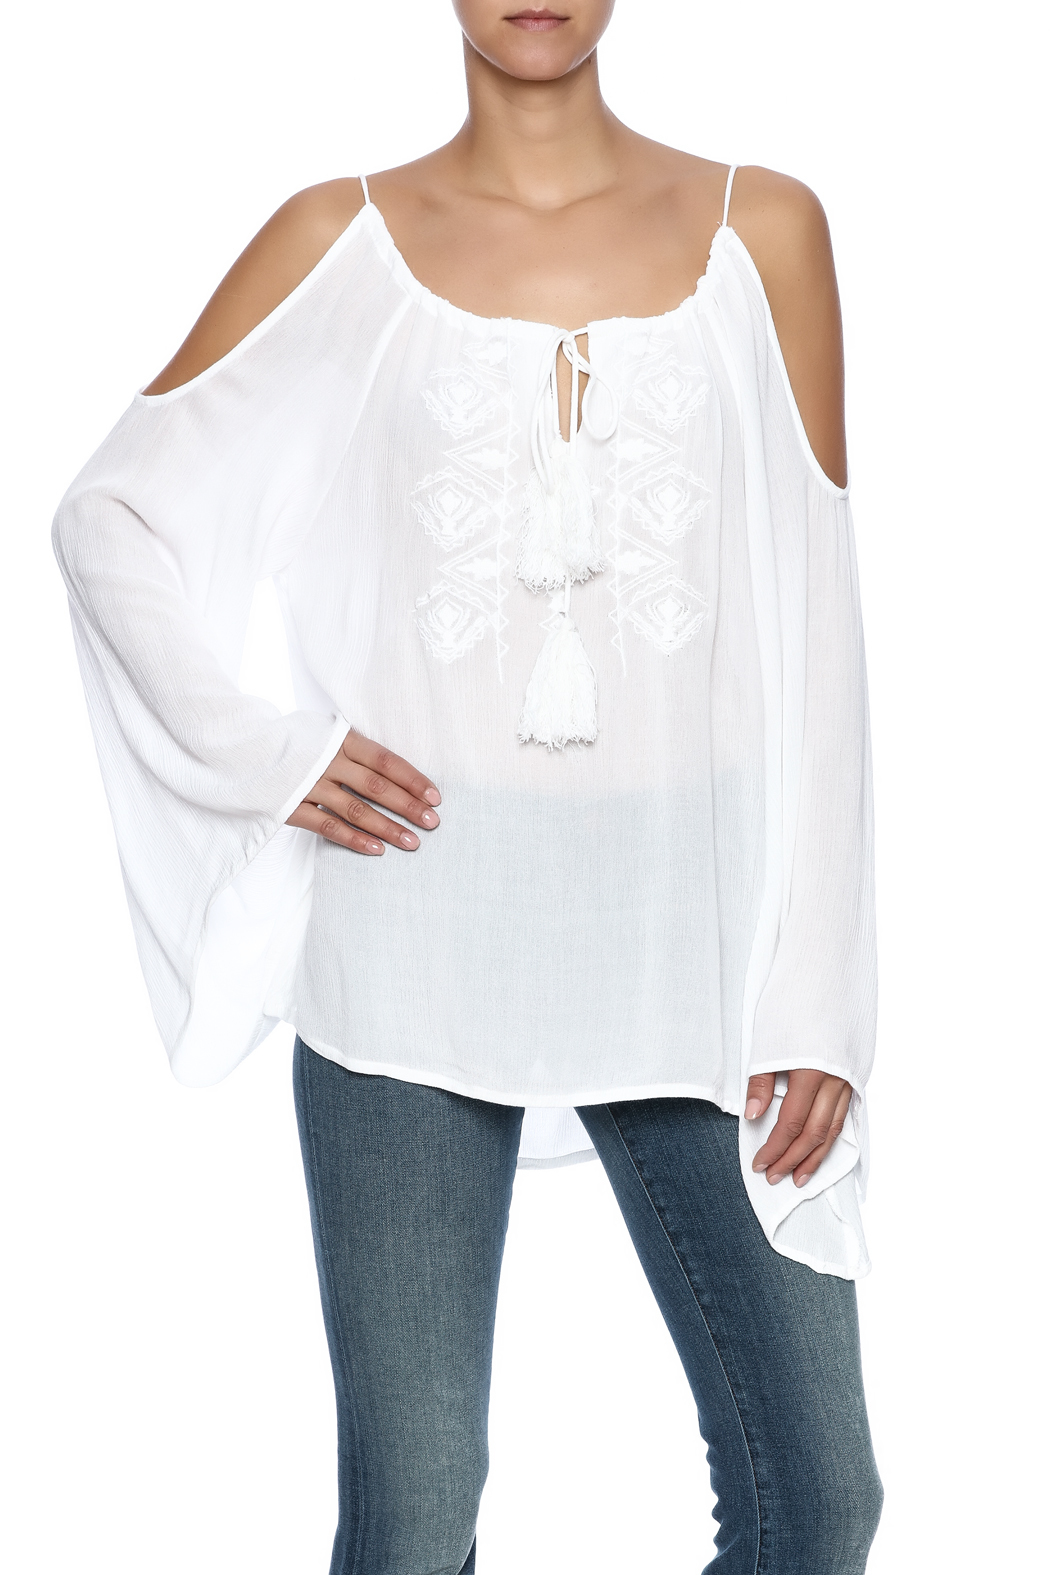 b6e9a1155264d Elan Cold Shoulder Top from Long Island by Kate   Hale — Shoptiques